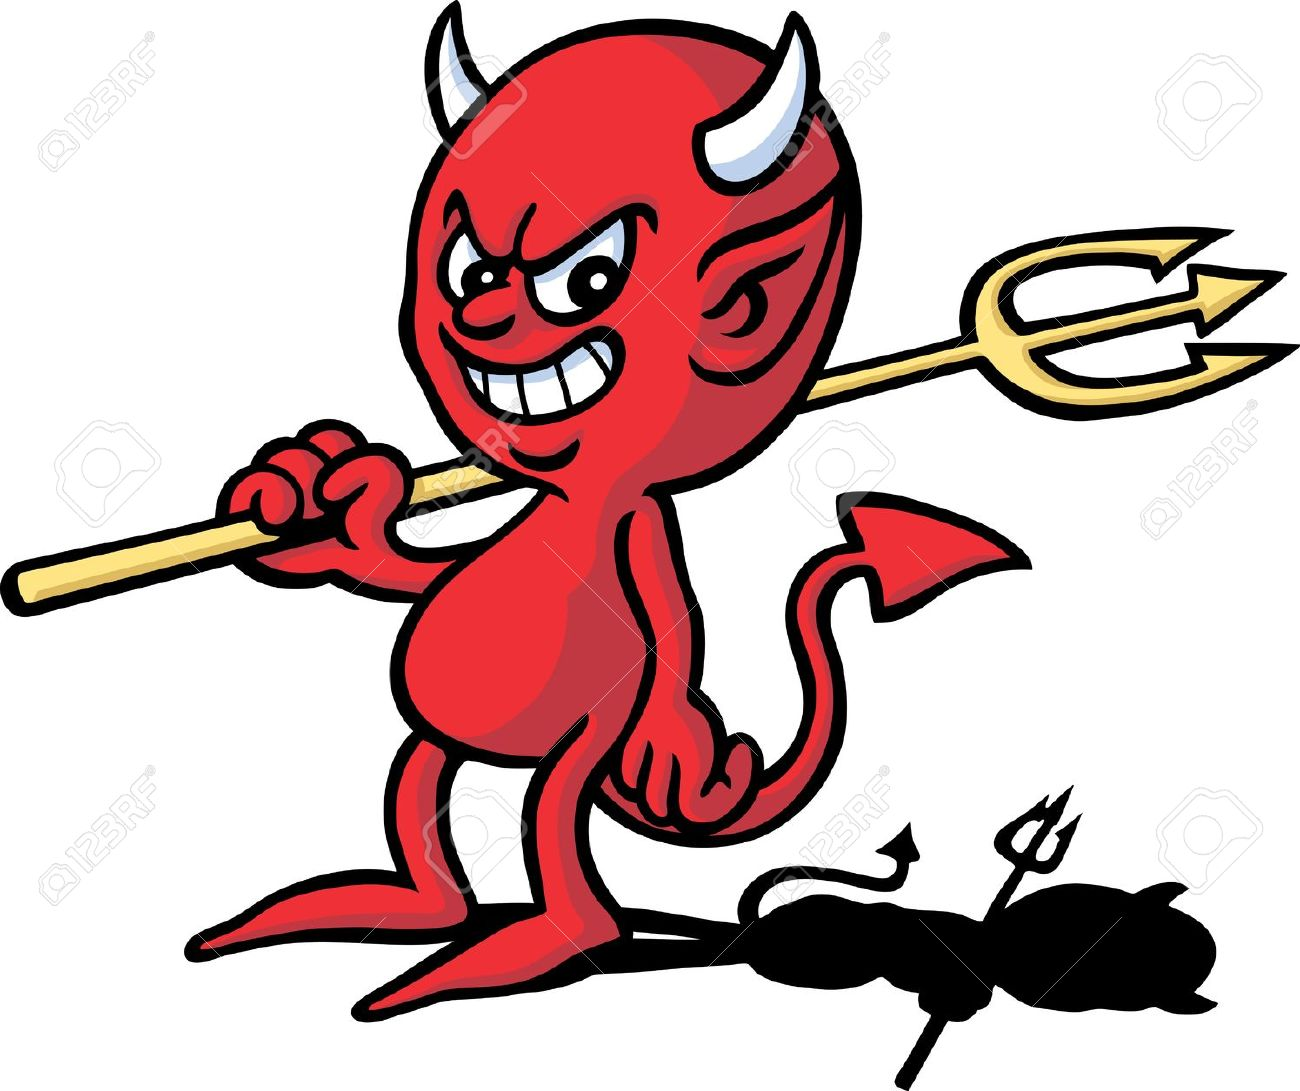 Demon clipart. Free download best on